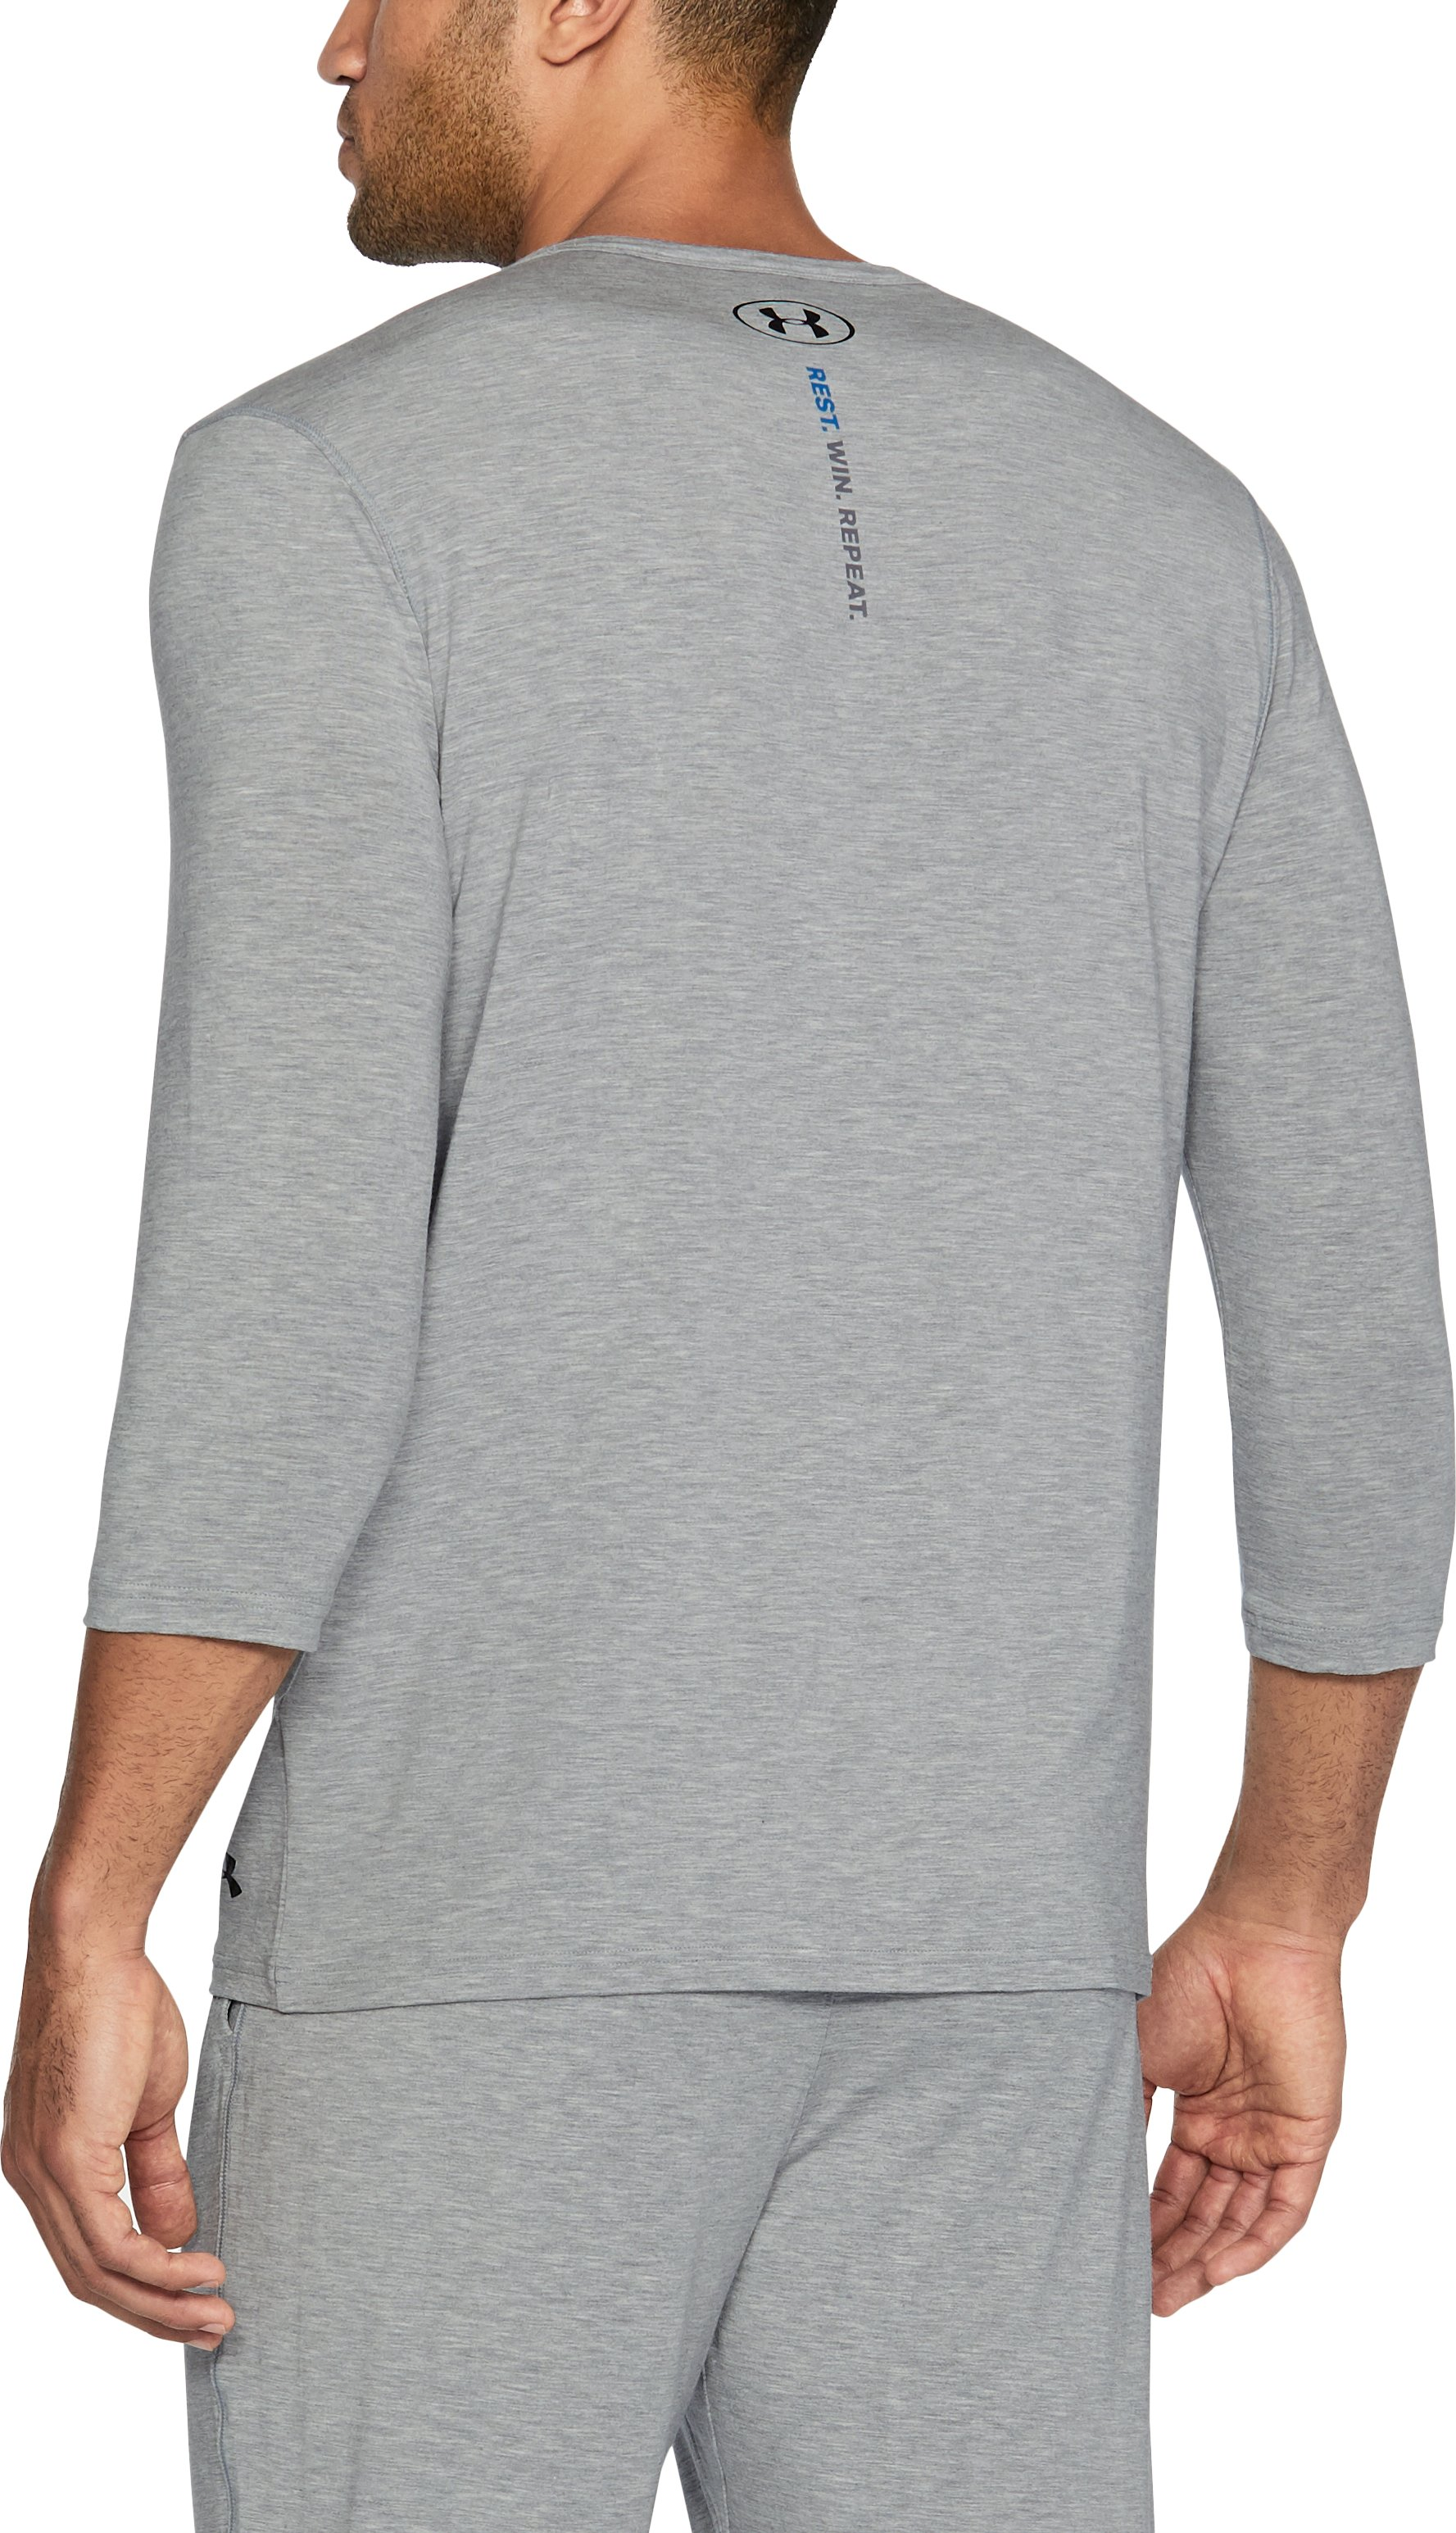 Men's Athlete Recovery Elite Sleepwear Henley, True Gray Heather, undefined